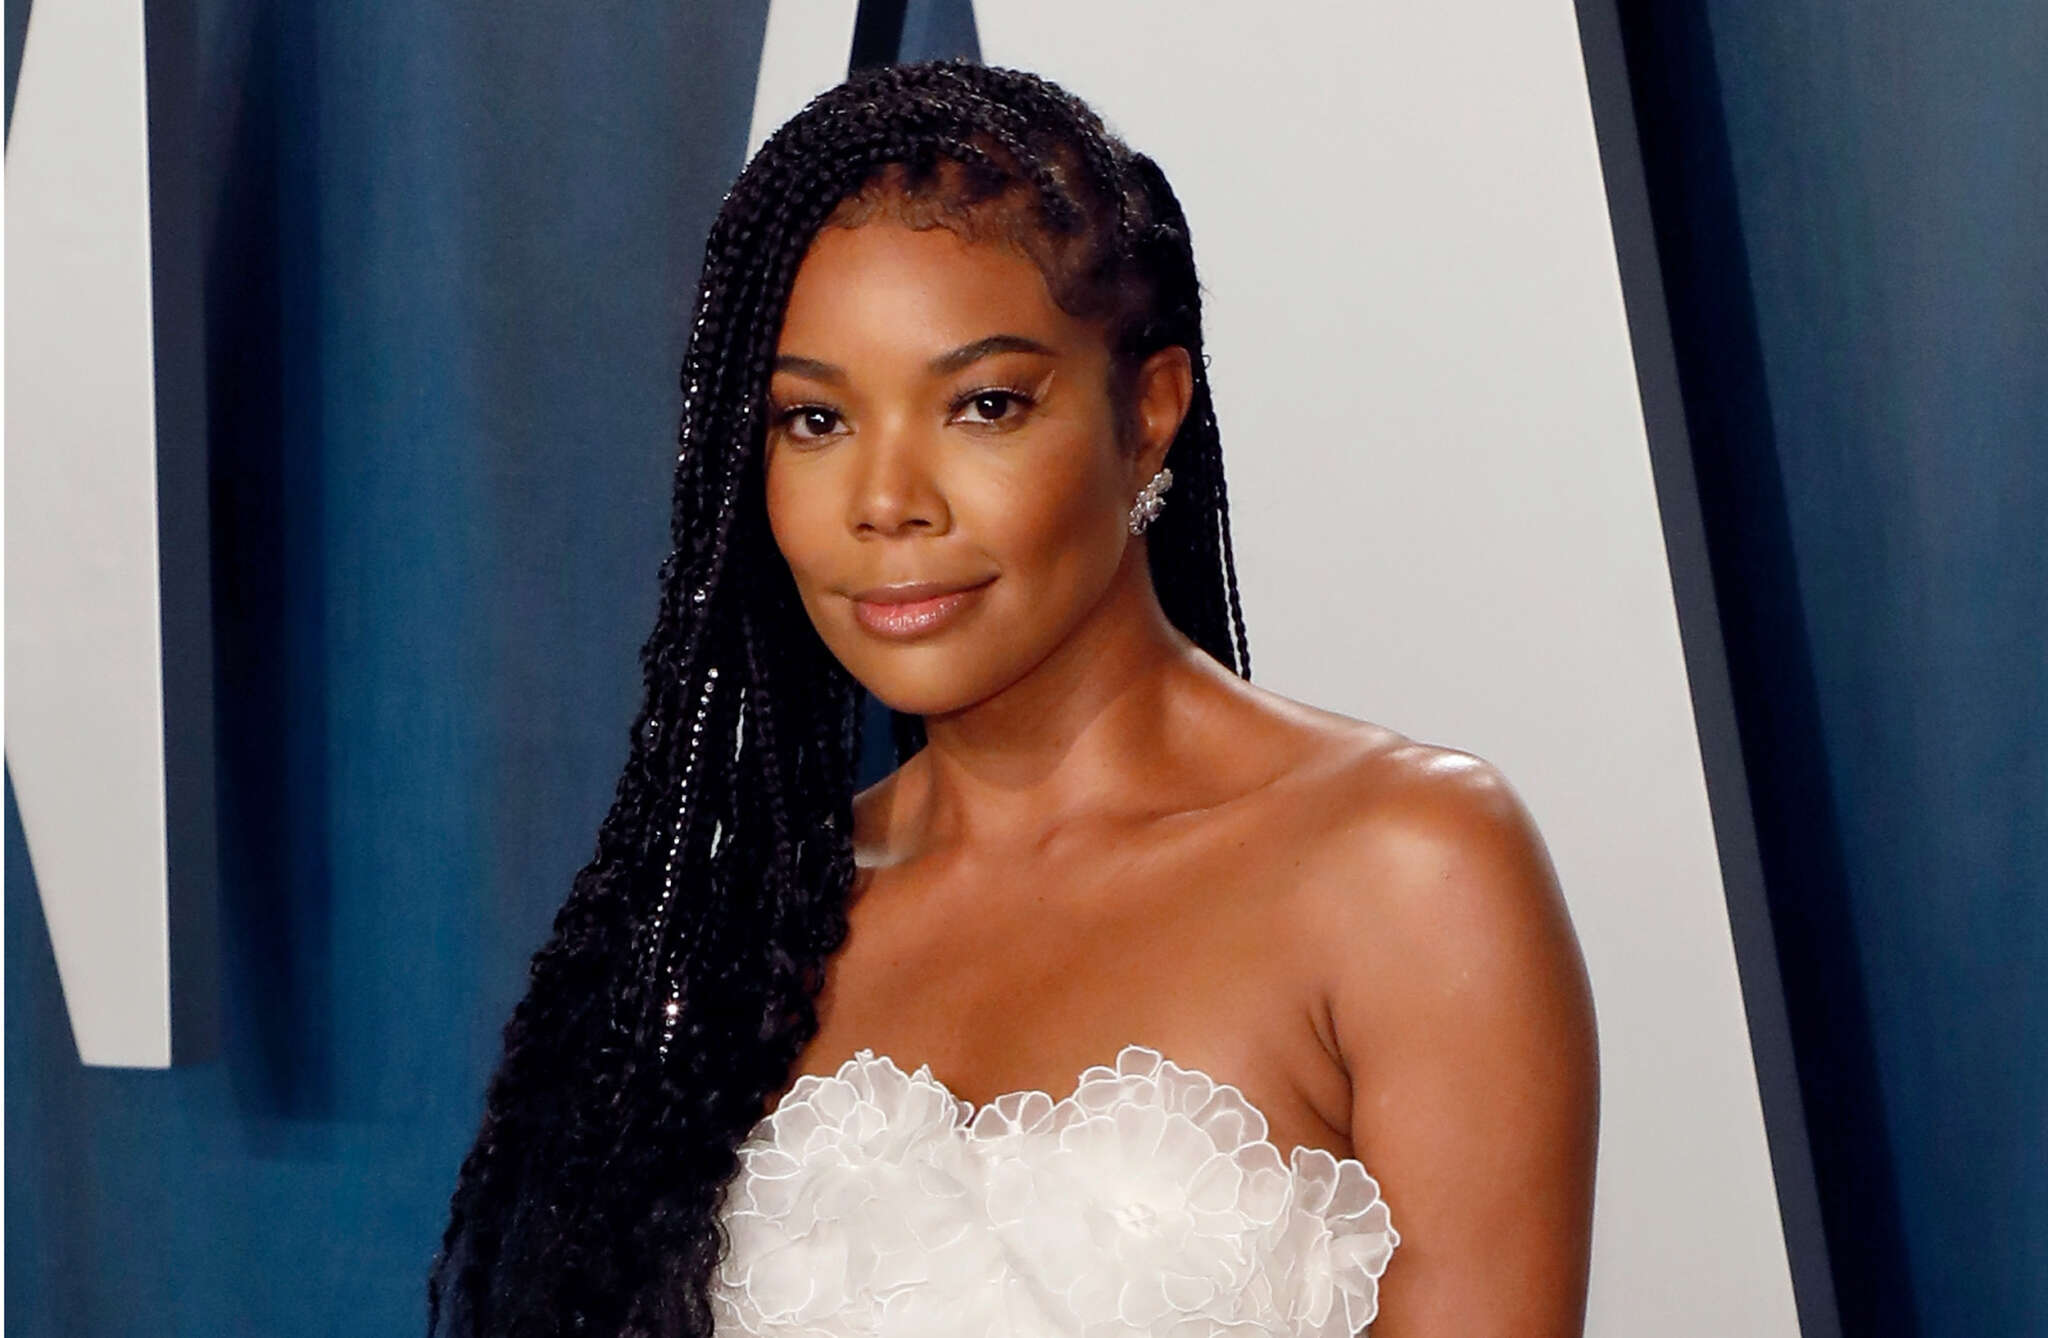 Gabrielle Union Praises The Confidence Queen – Check Out Who This Is